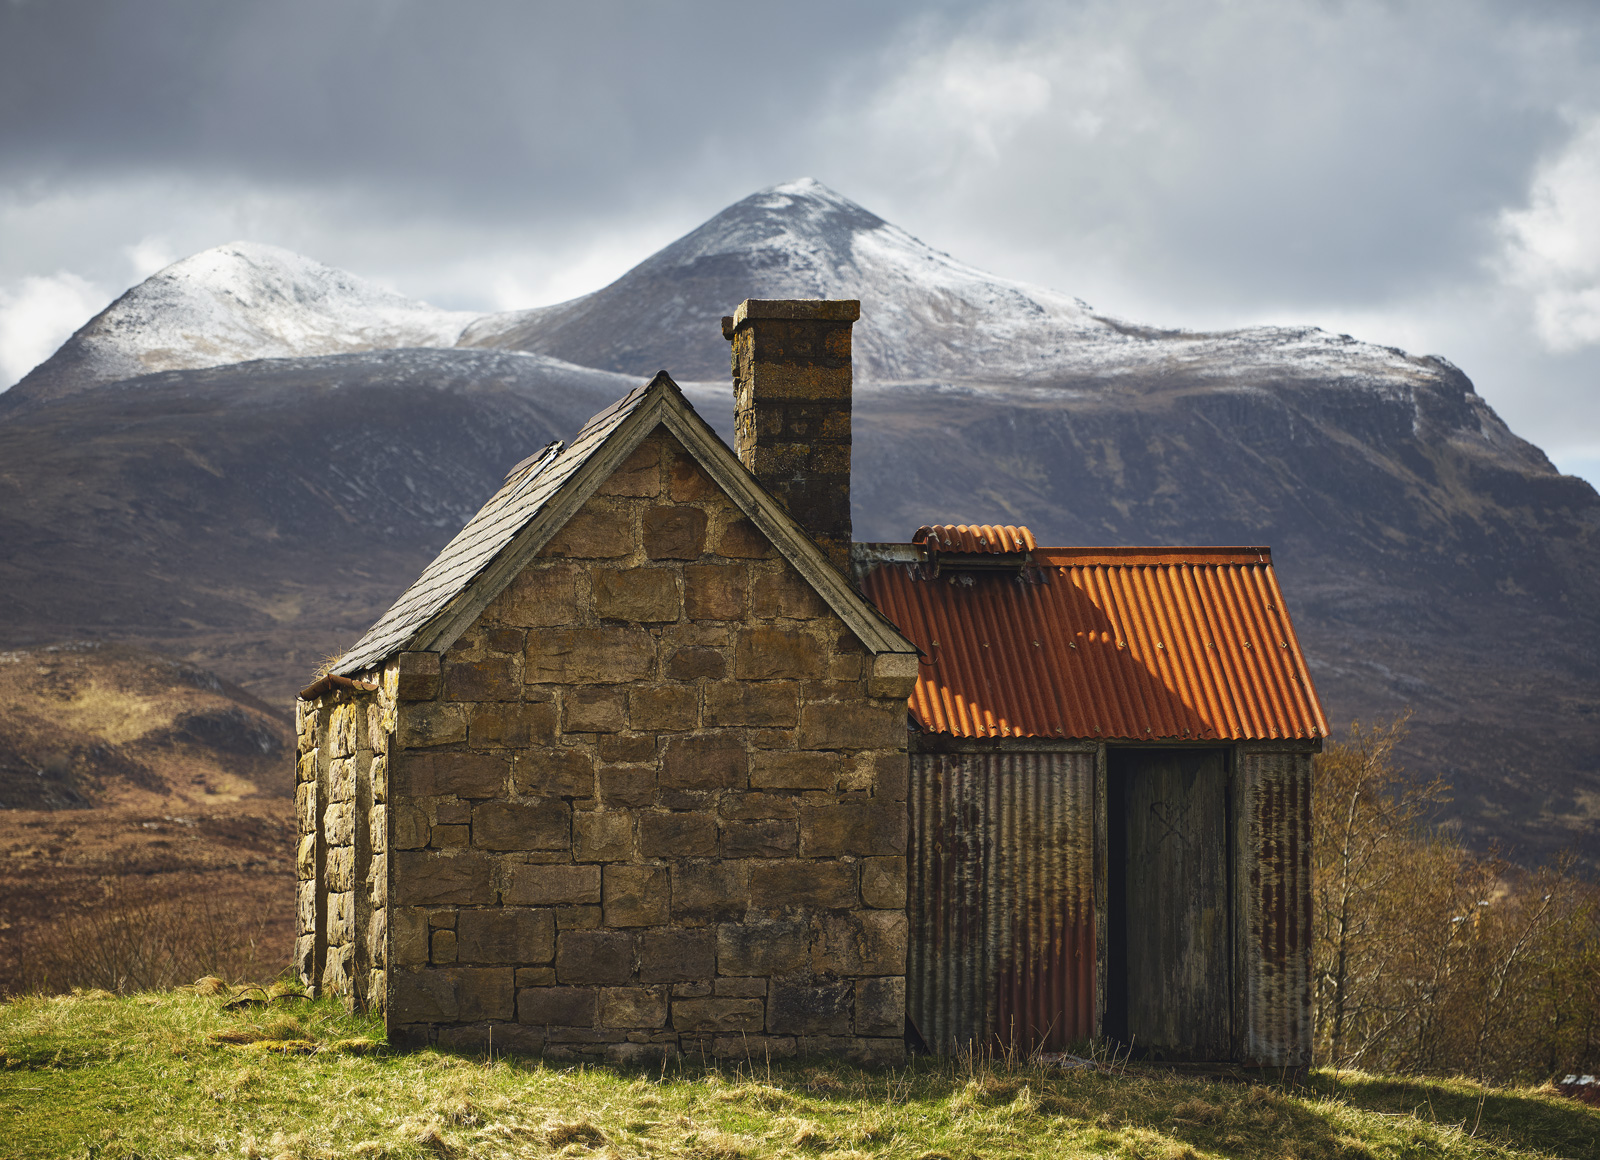 Elphins little decrepit shack on a grassy knoll makes a compelling subject against snow capped Cul Mor in Elphin